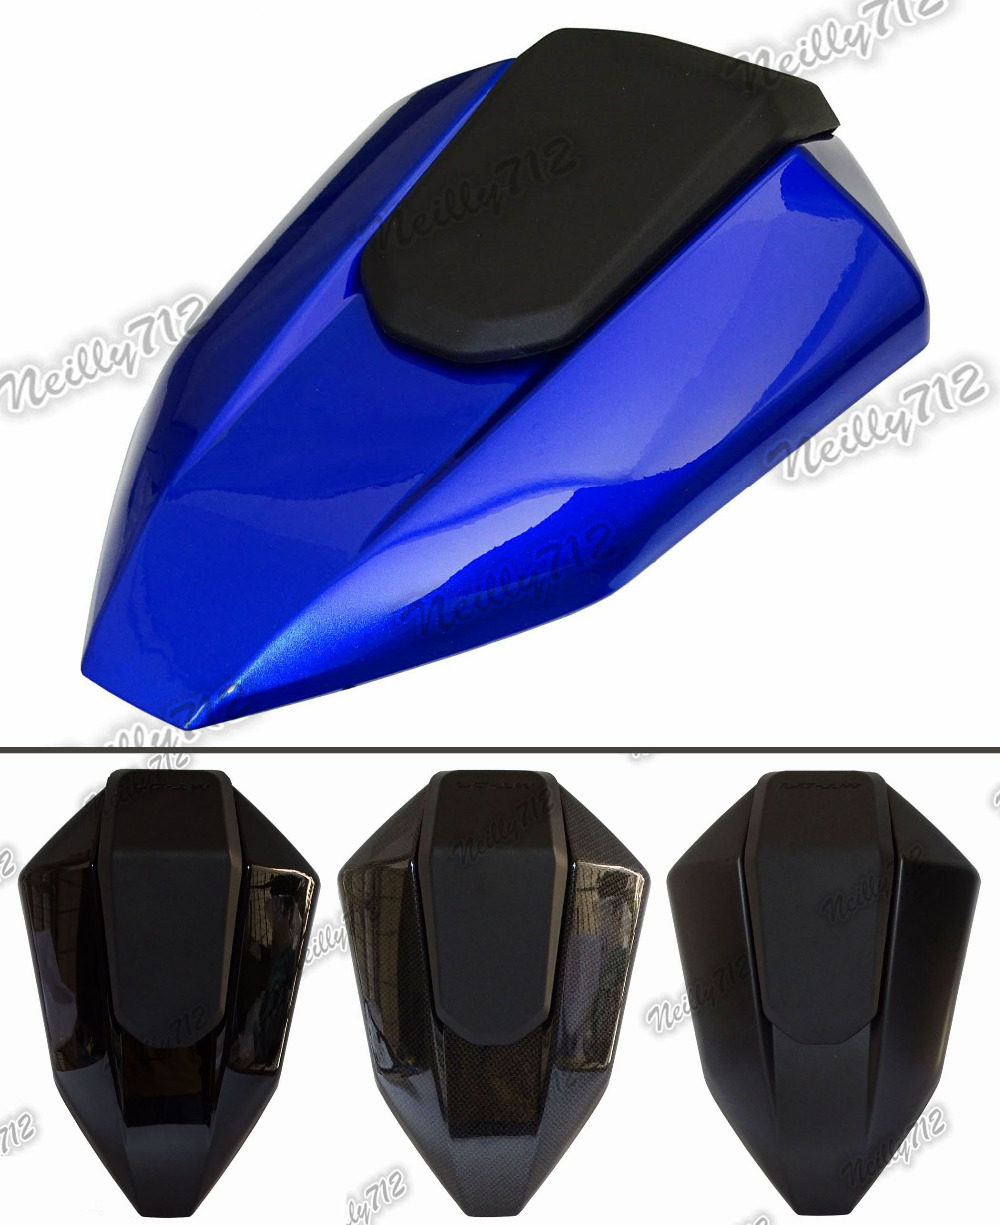 Motorcycle Rear Seat Cover Tail Section Fairing Cowl For Yamaha MT-07 MT07 FZ-07 FZ07 2014 2015 2016 motorcycle parts rear seat cover tail section fairing cowl black for 2013 2014 2015 honda cbr500r cbr 500r